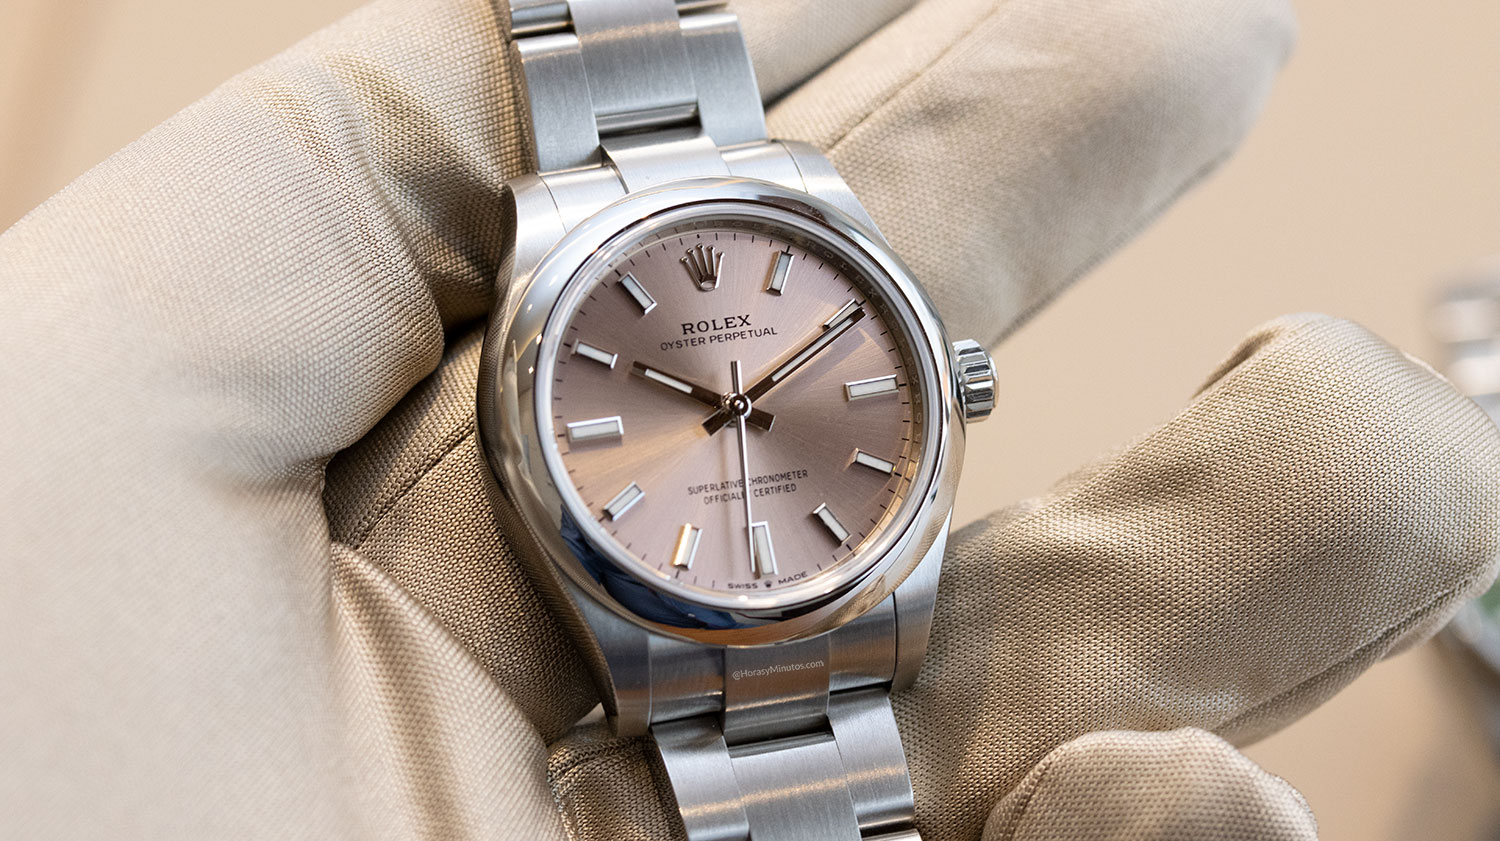 Rolex Oyster Perpetual 28 mm 2020 Referencia 124300 rosa